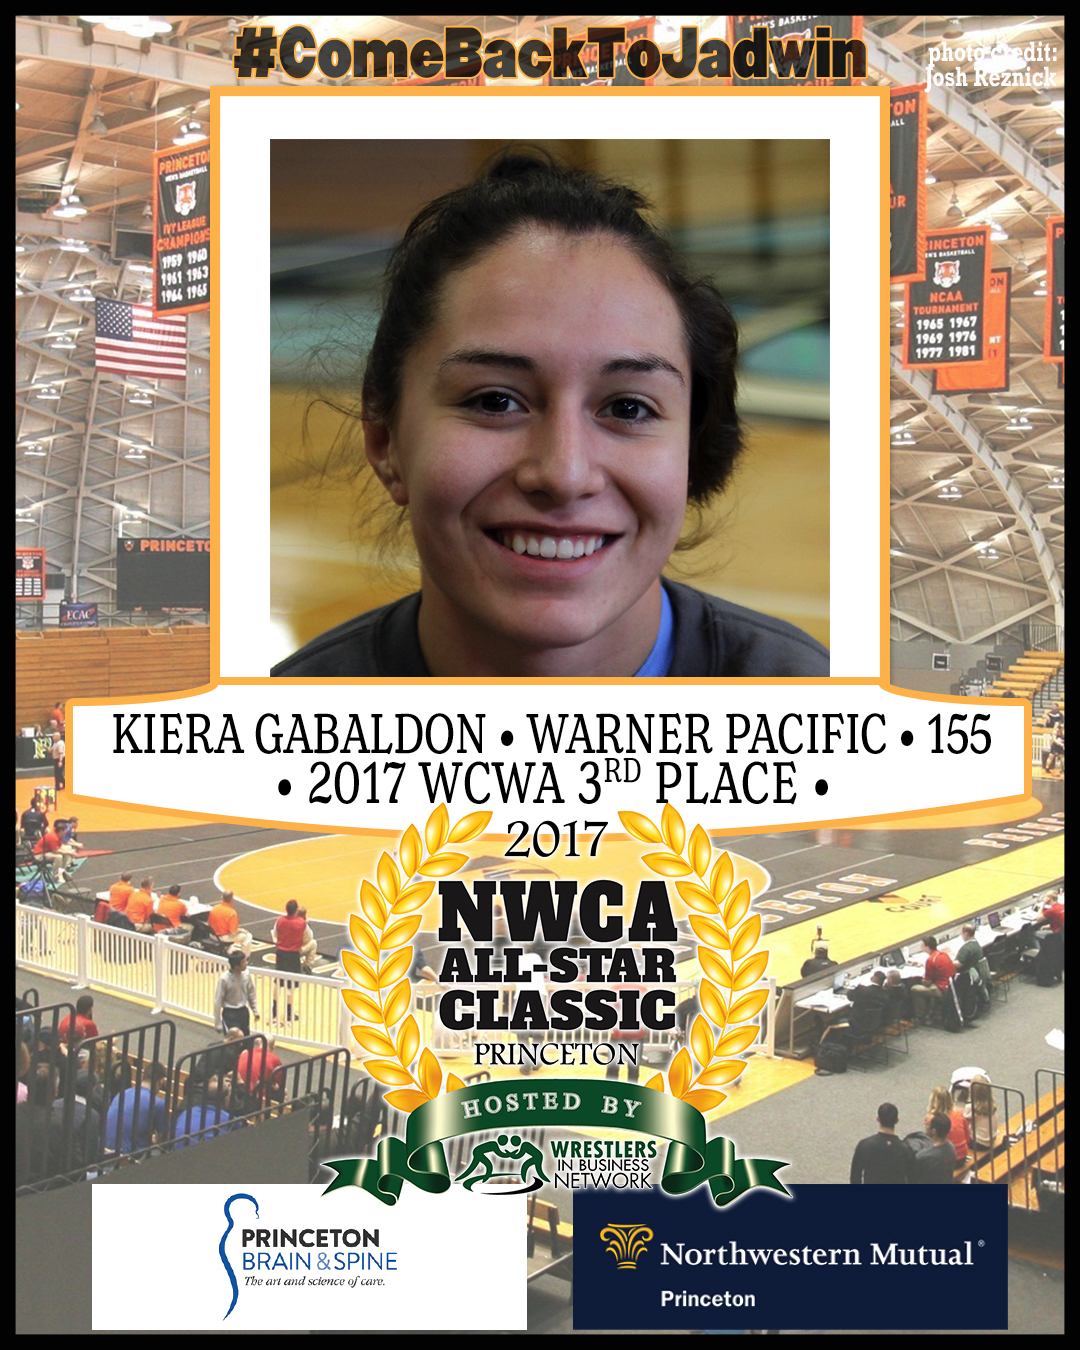 2017 All Star Classic Social Media Graphic_KIERA_GABALDON_REV.jpg